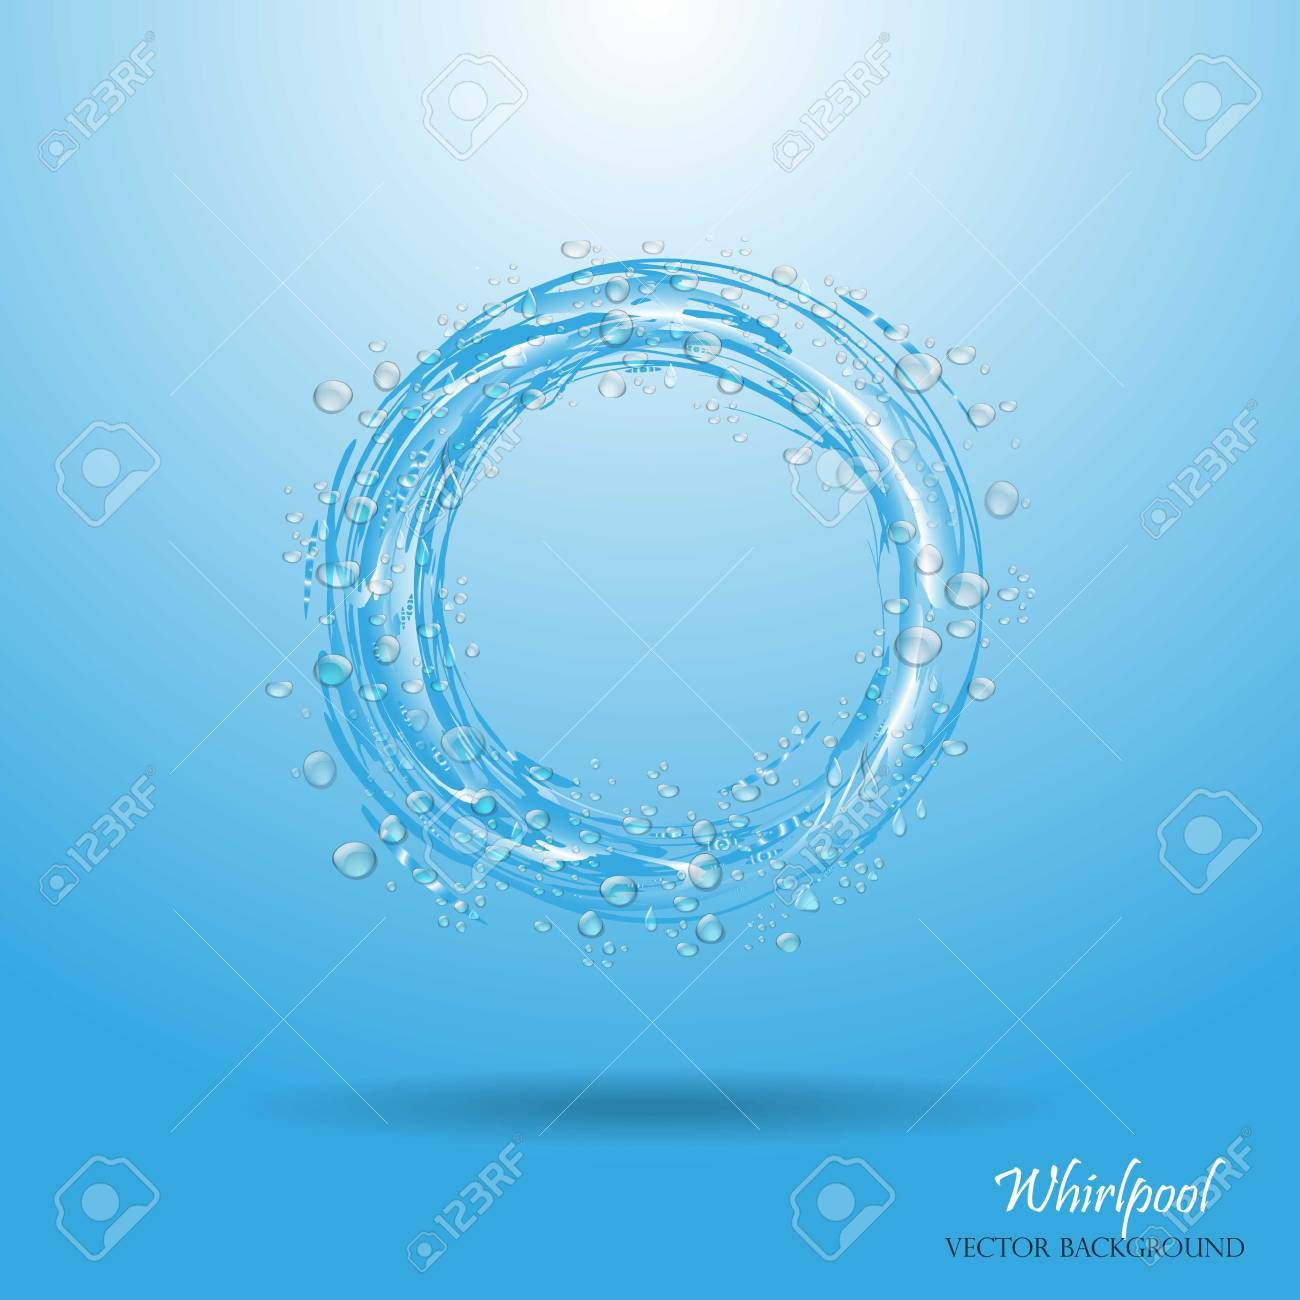 Aqua Whirlpools Water Circle Whirlpool Realistic Water Droplets Vector Illustration